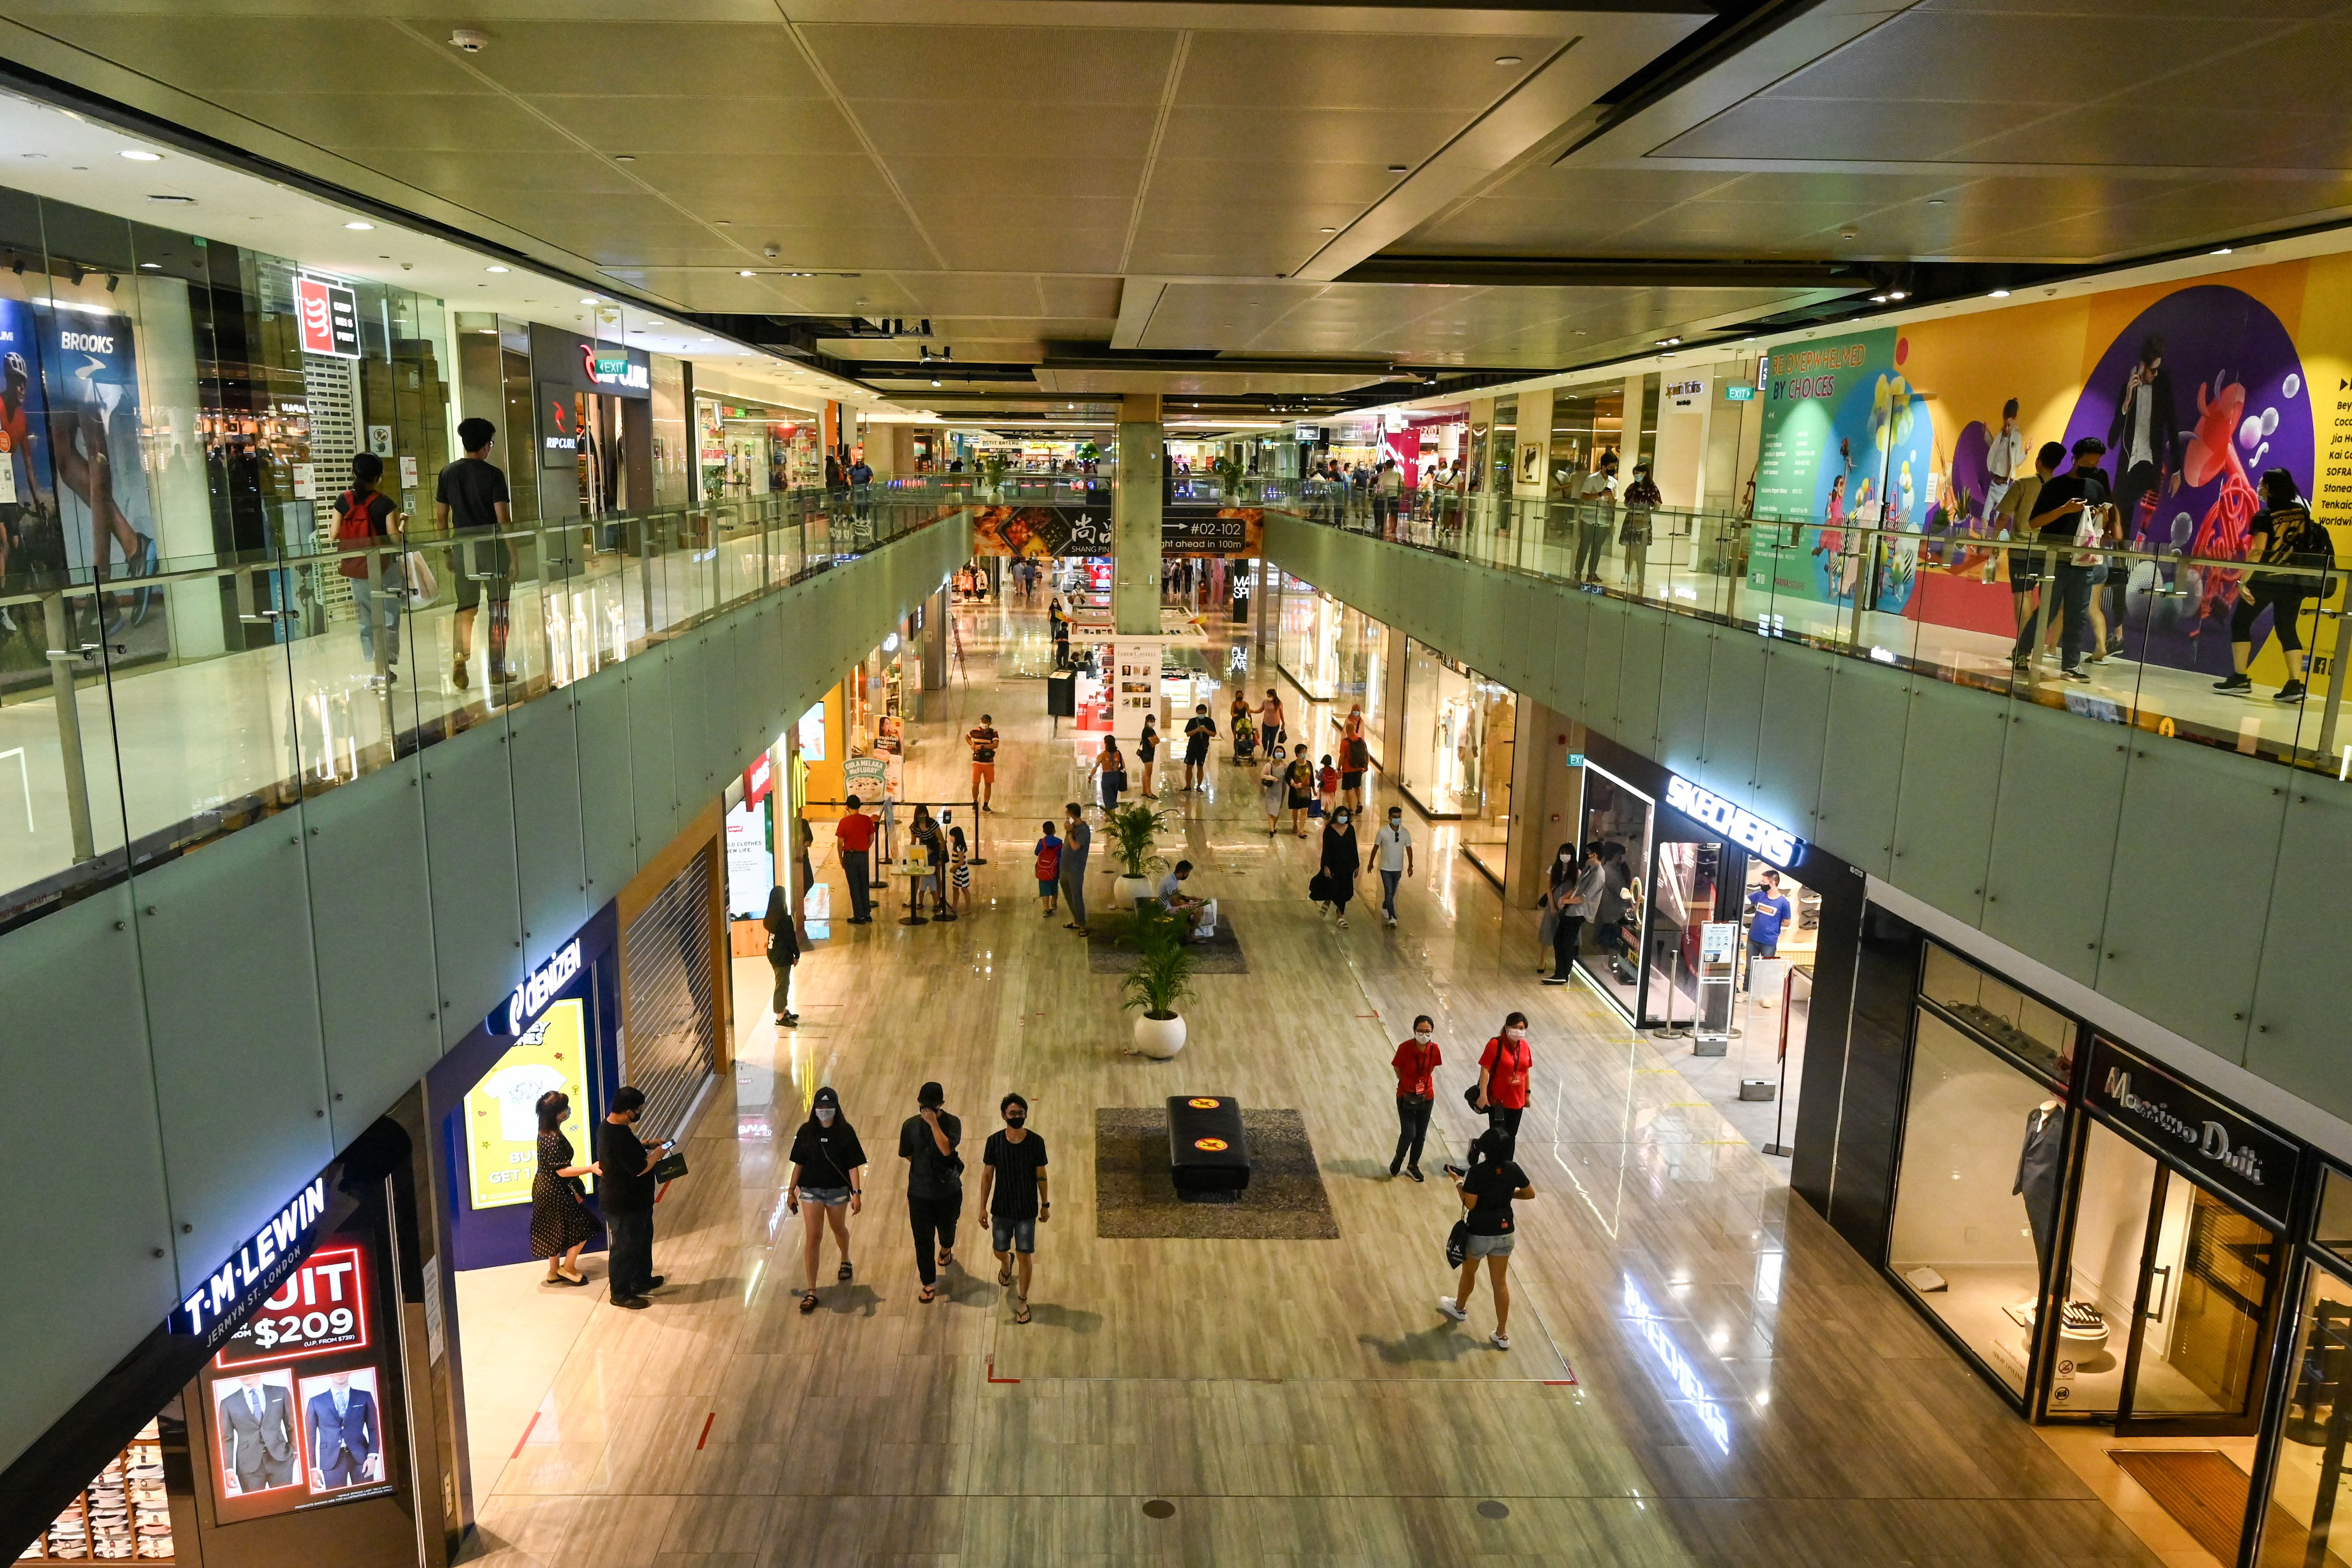 Singapore retailers are reeling from further Covid measures as sales drop 70% for some thumbnail